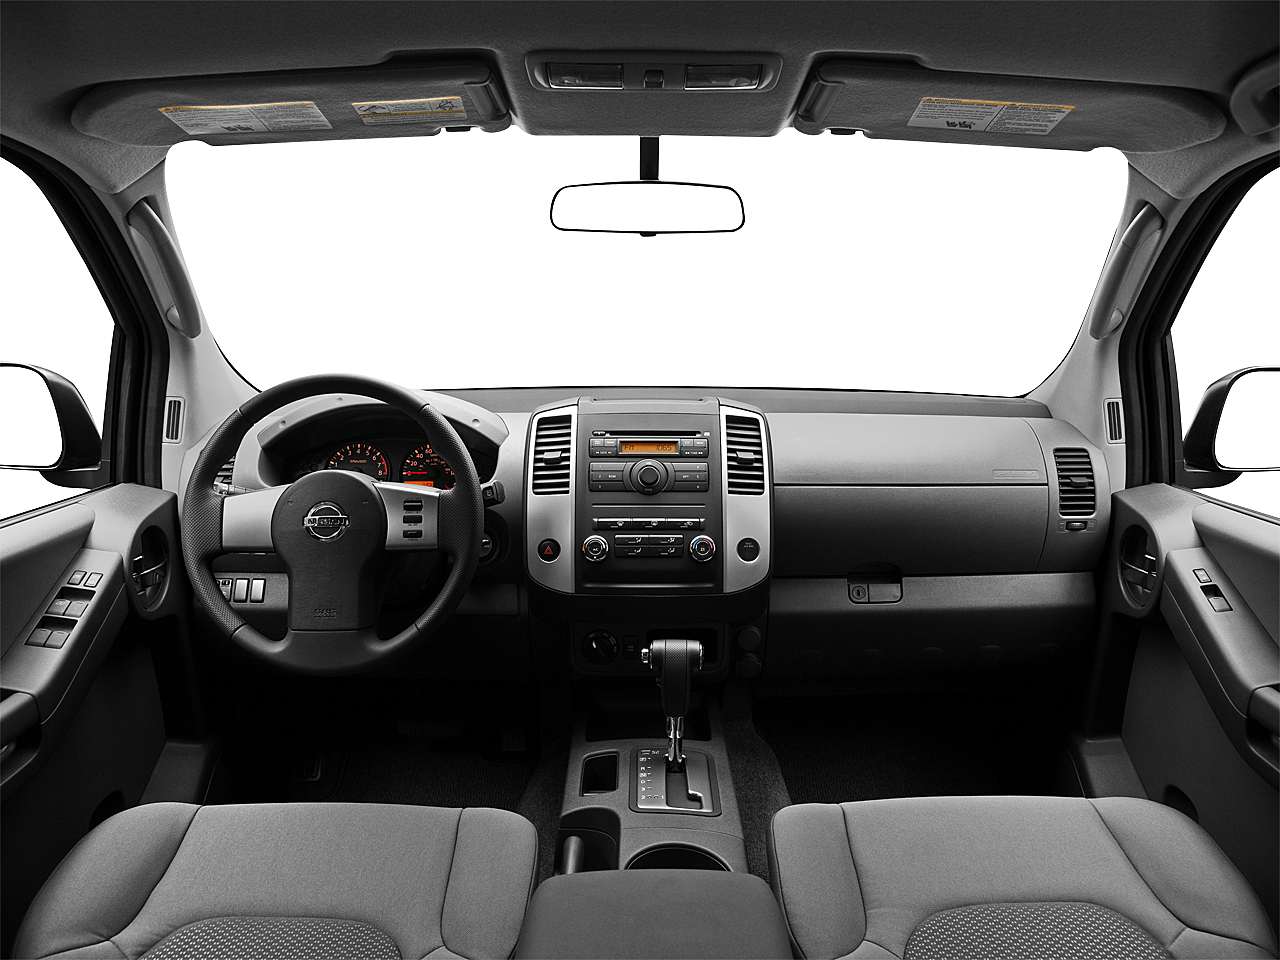 2011 Nissan Xterra S, centered wide dash shot